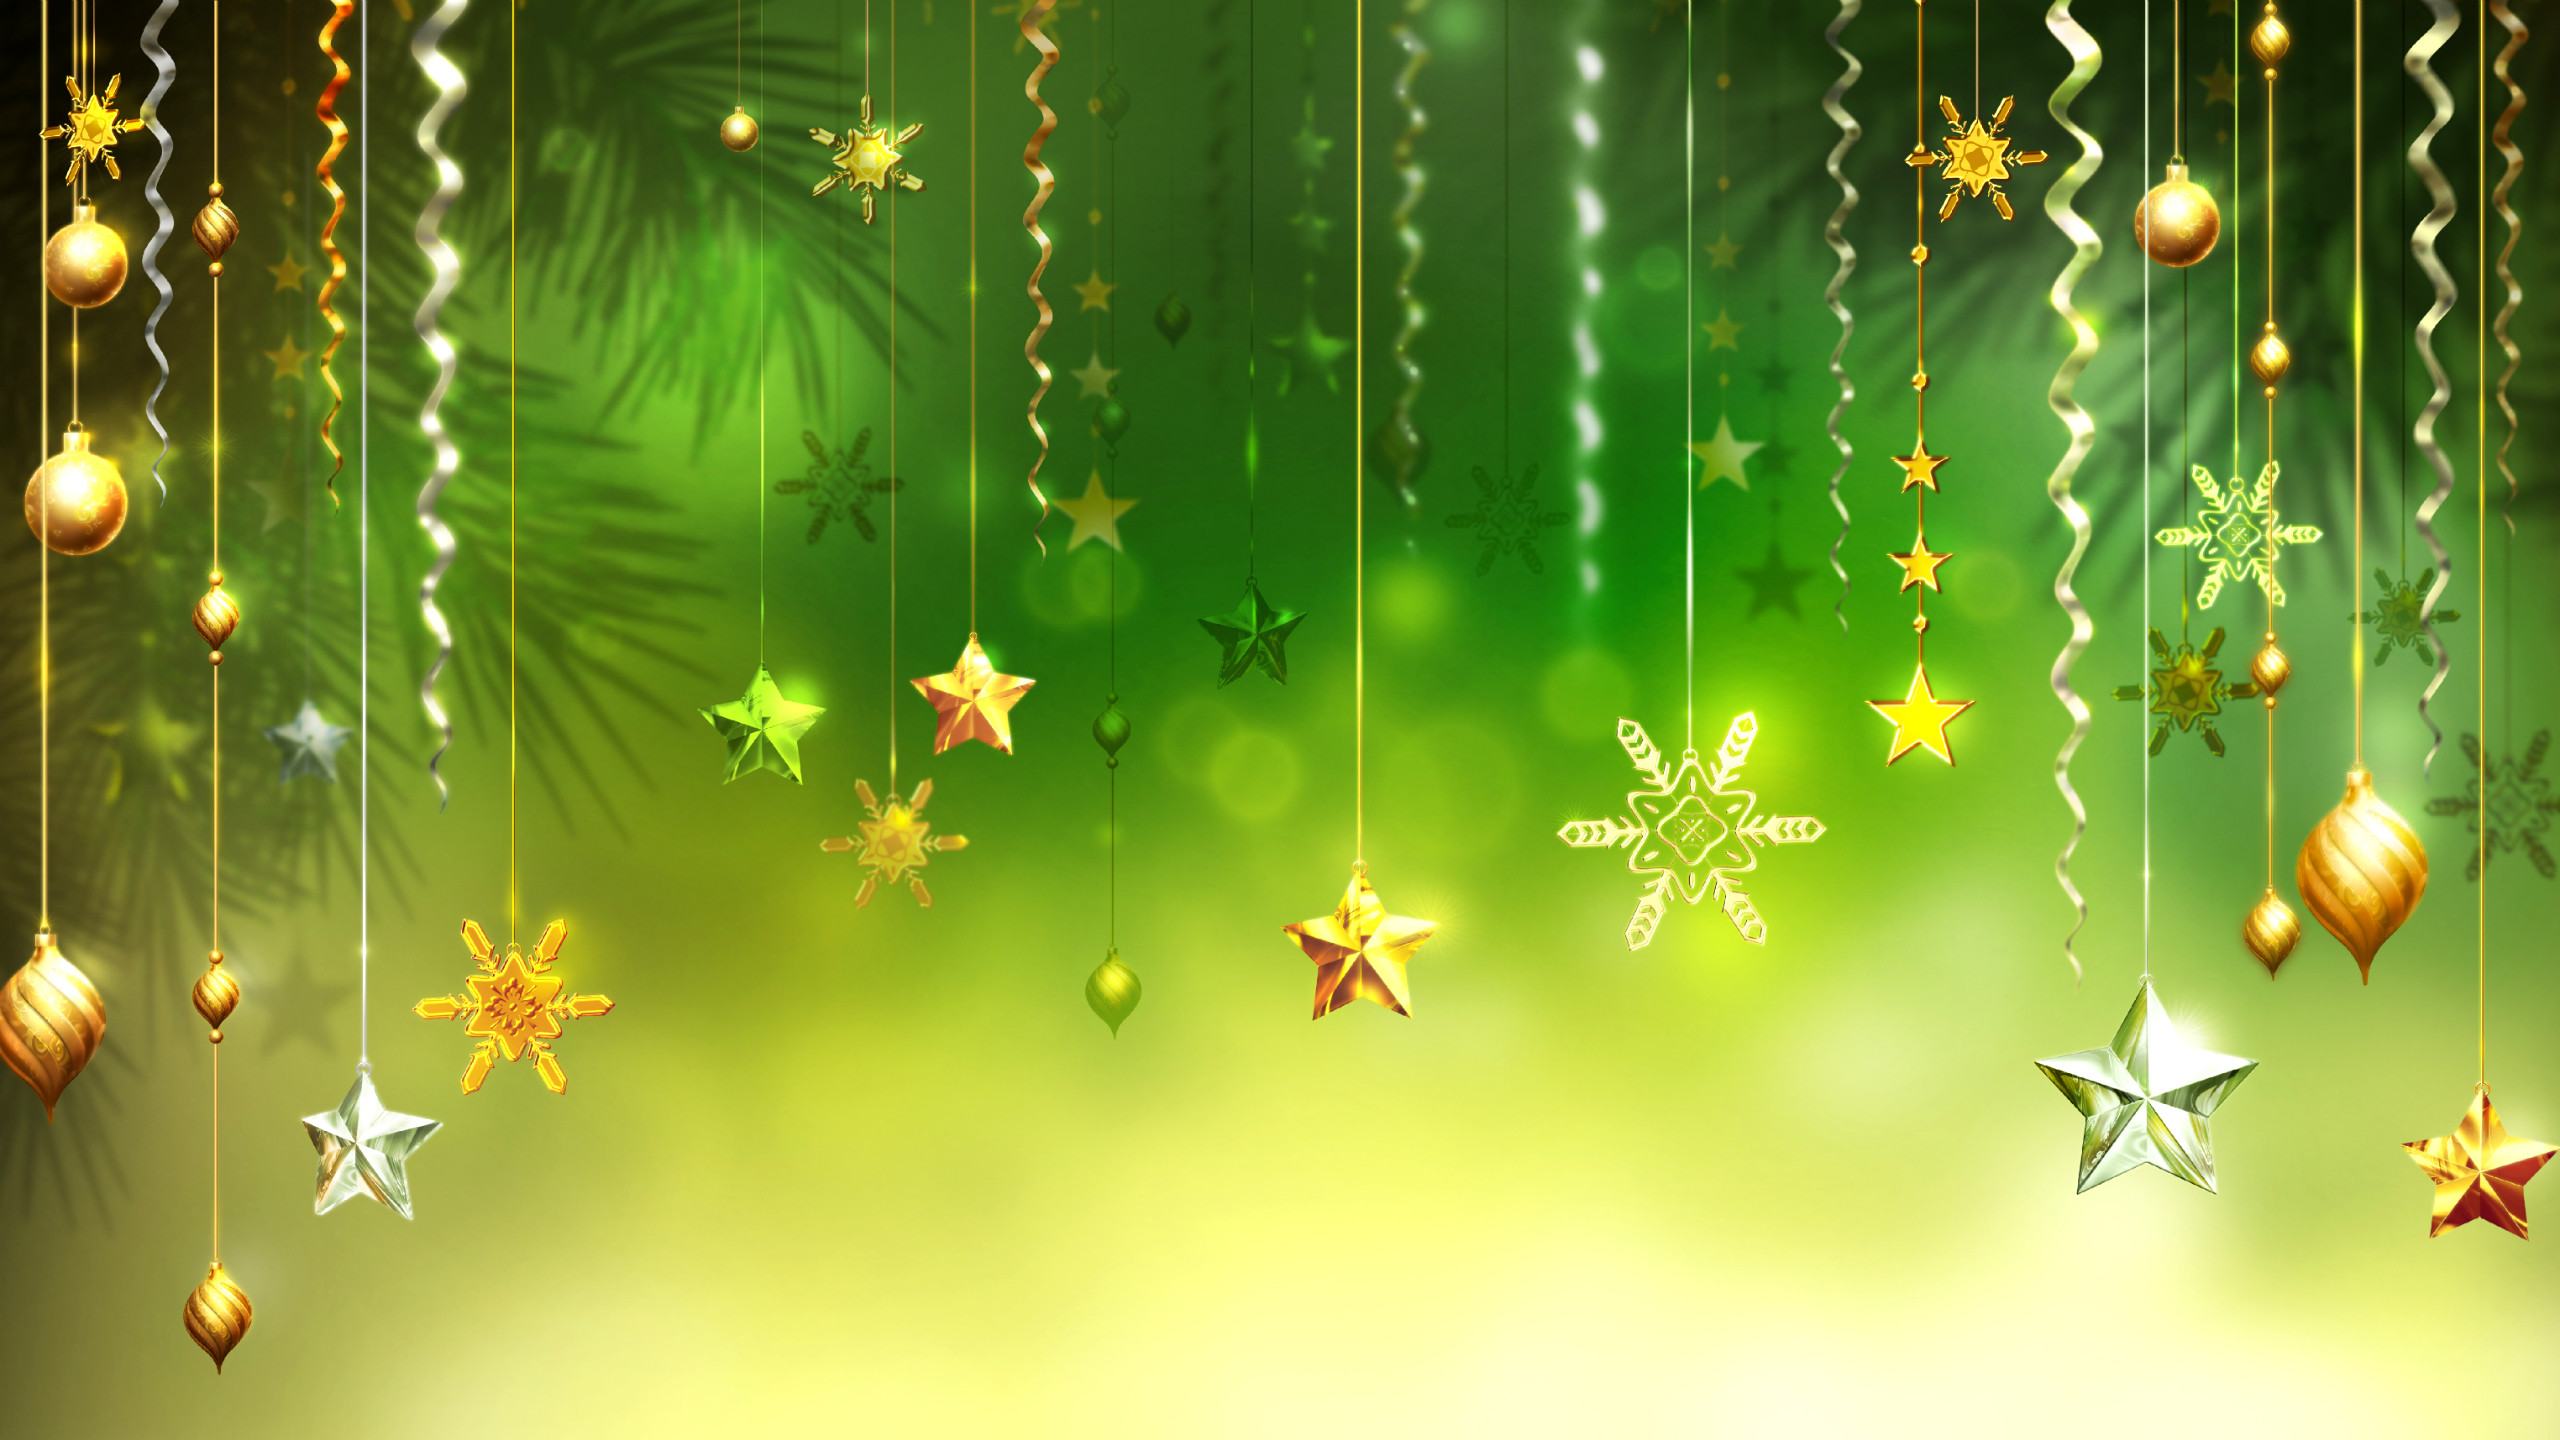 2560x1440 Christmas Wallpaper 47841